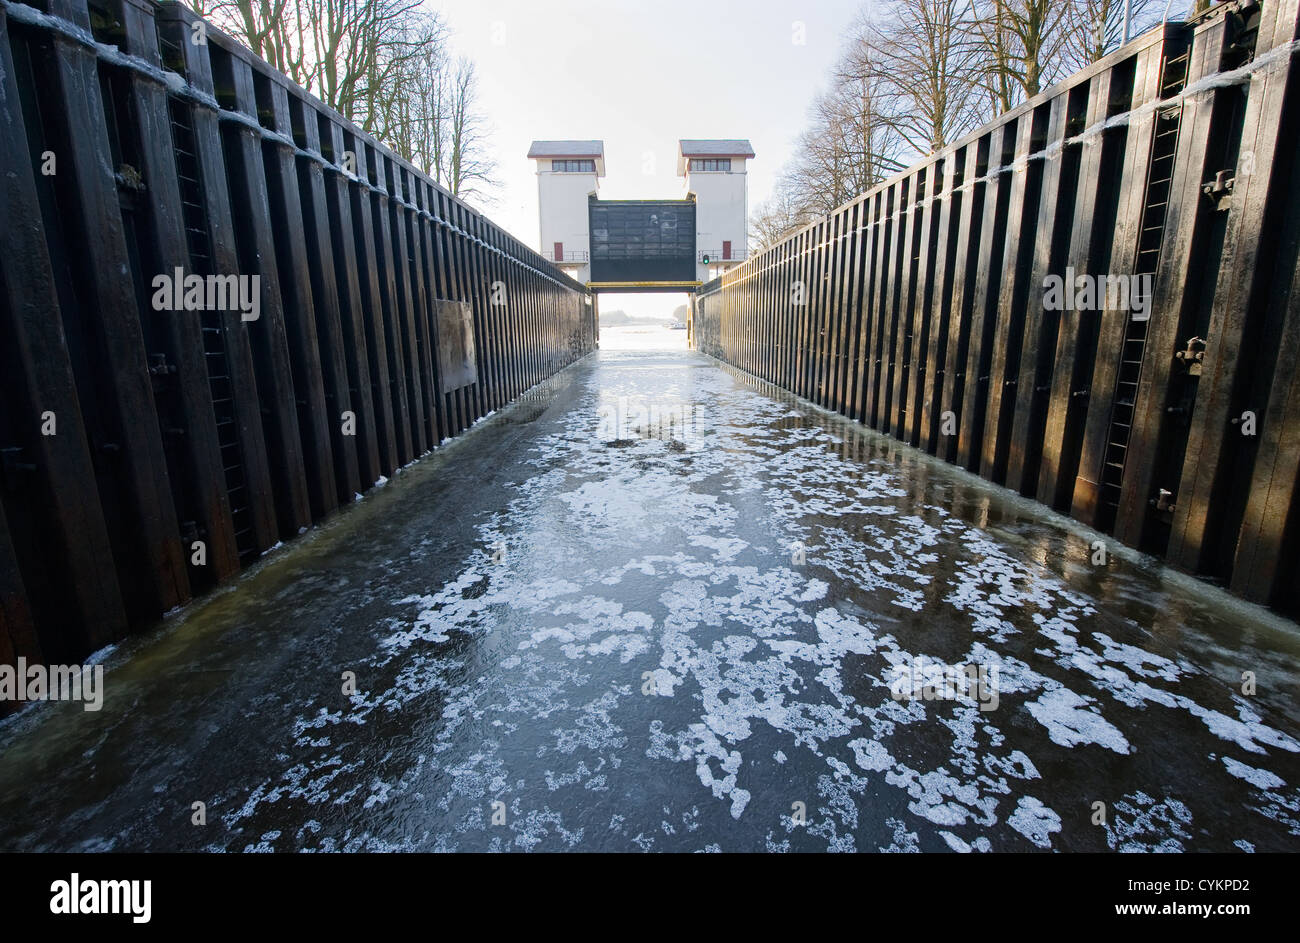 Ice in a sluice in a Dutch canal - Stock Image